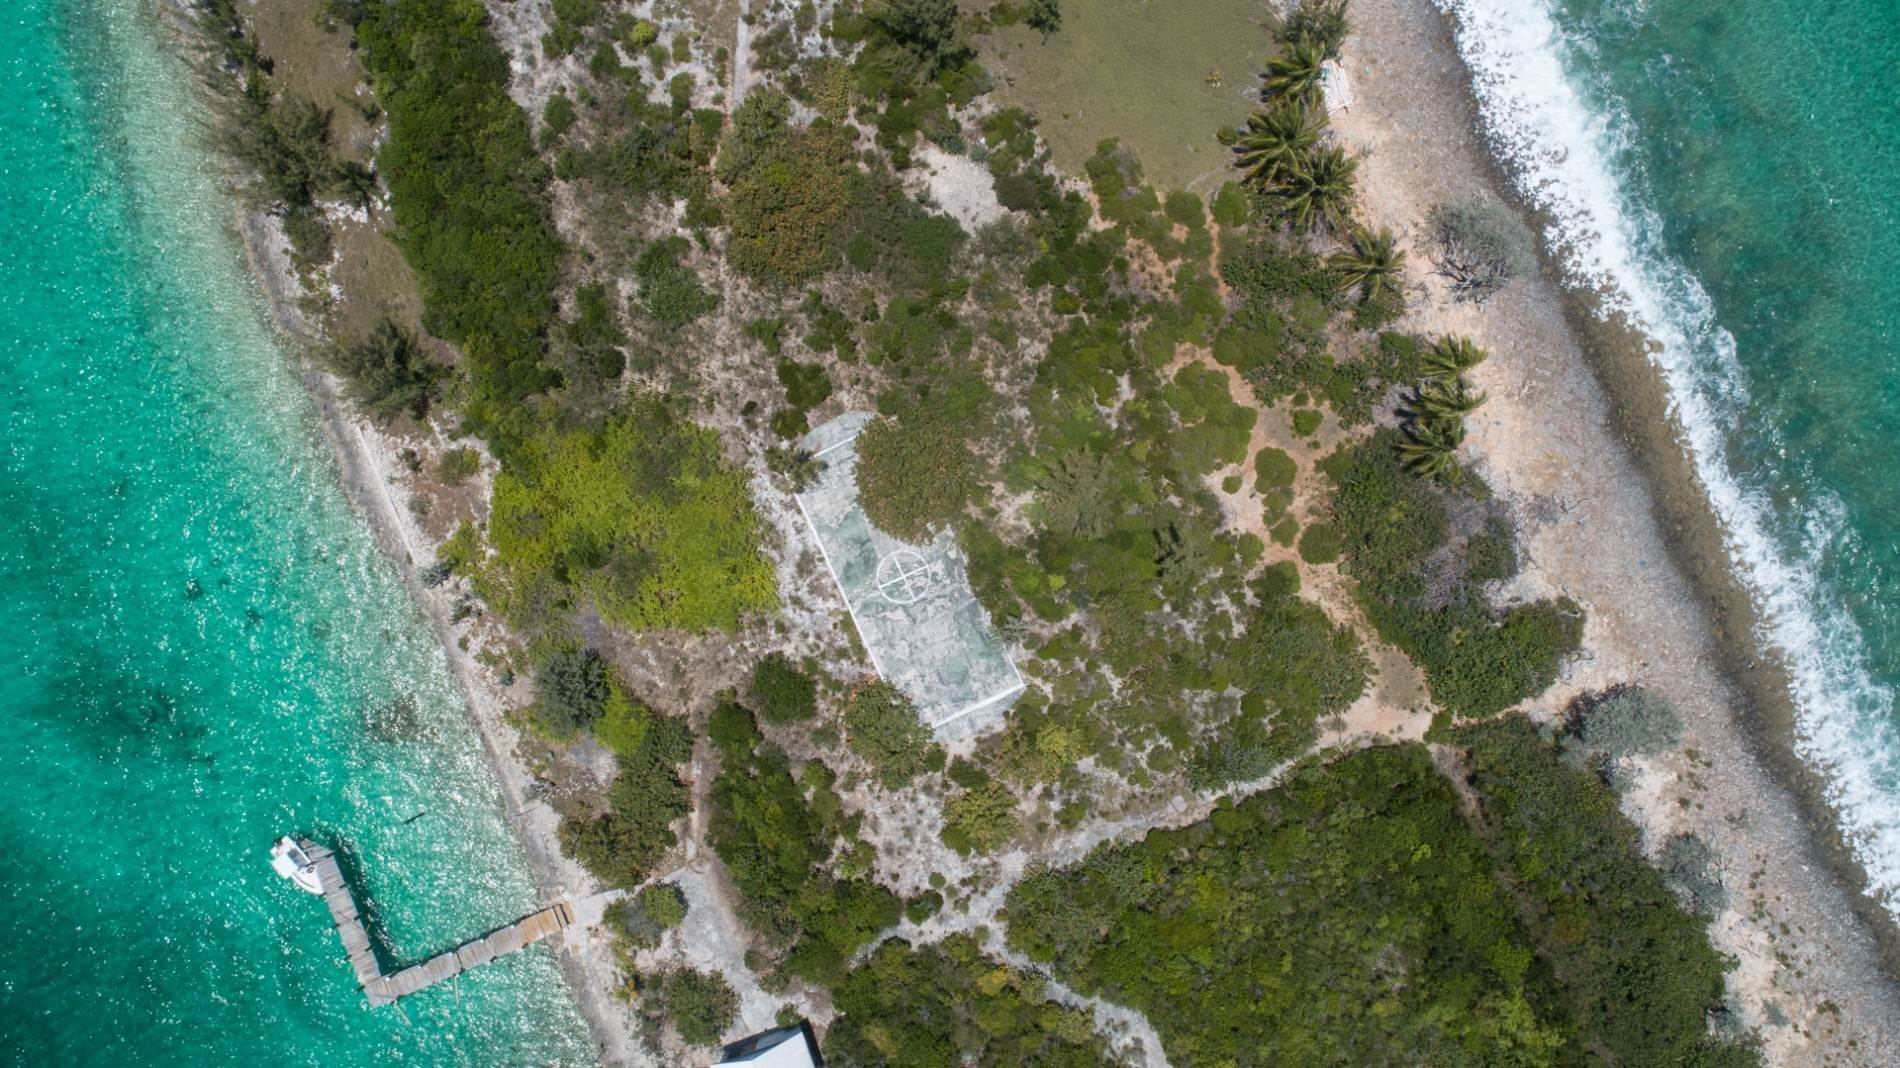 4. Private Islands for Sale at Pierre Island, A Perfect Private Retreat Island Near Harbour Island - MLS 40806 Harbour Island, Eleuthera, Bahamas